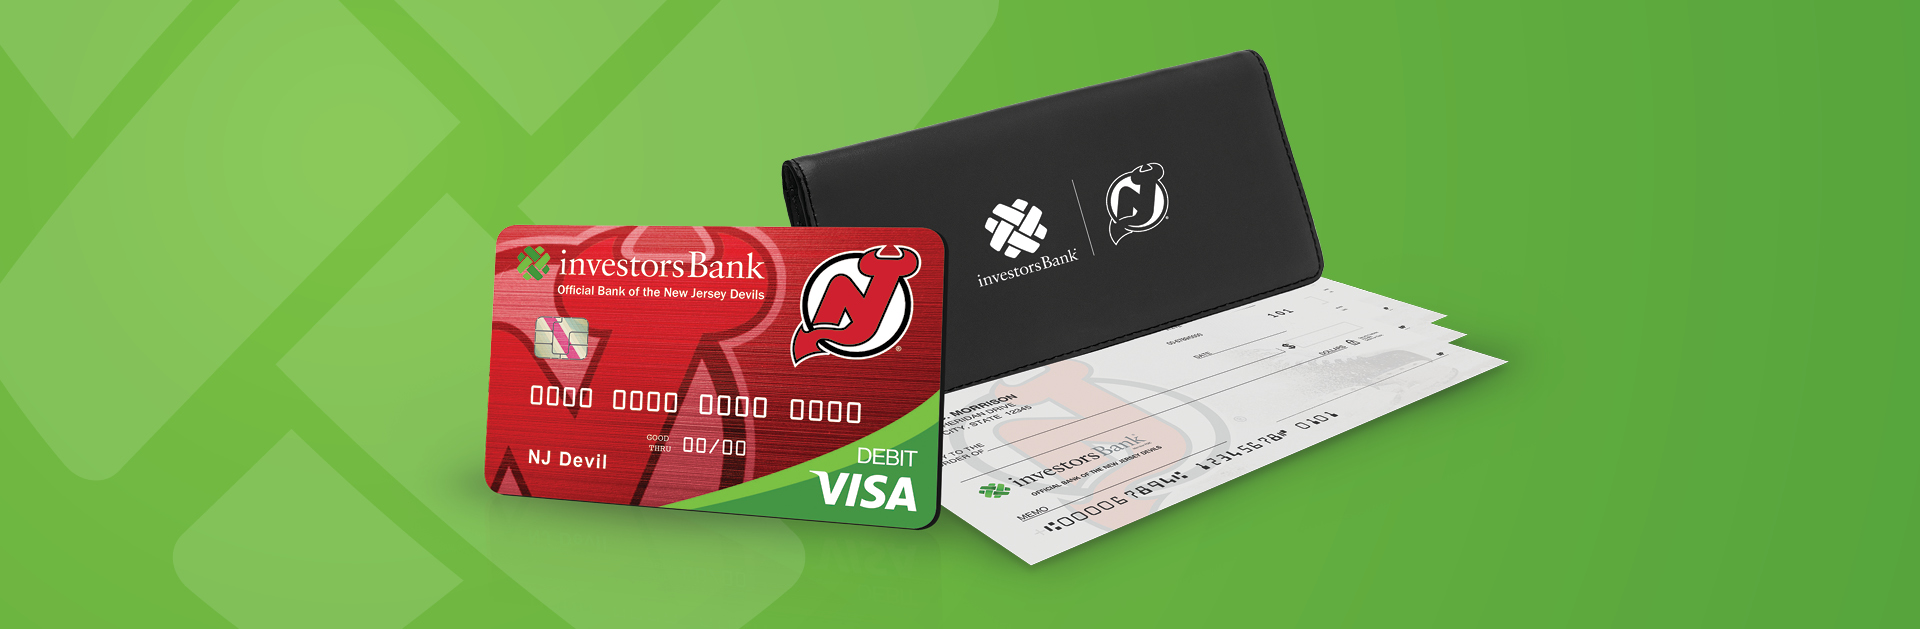 New Jersey Devils Checking | Investors Bank | NY Bank | NJ Bank ...